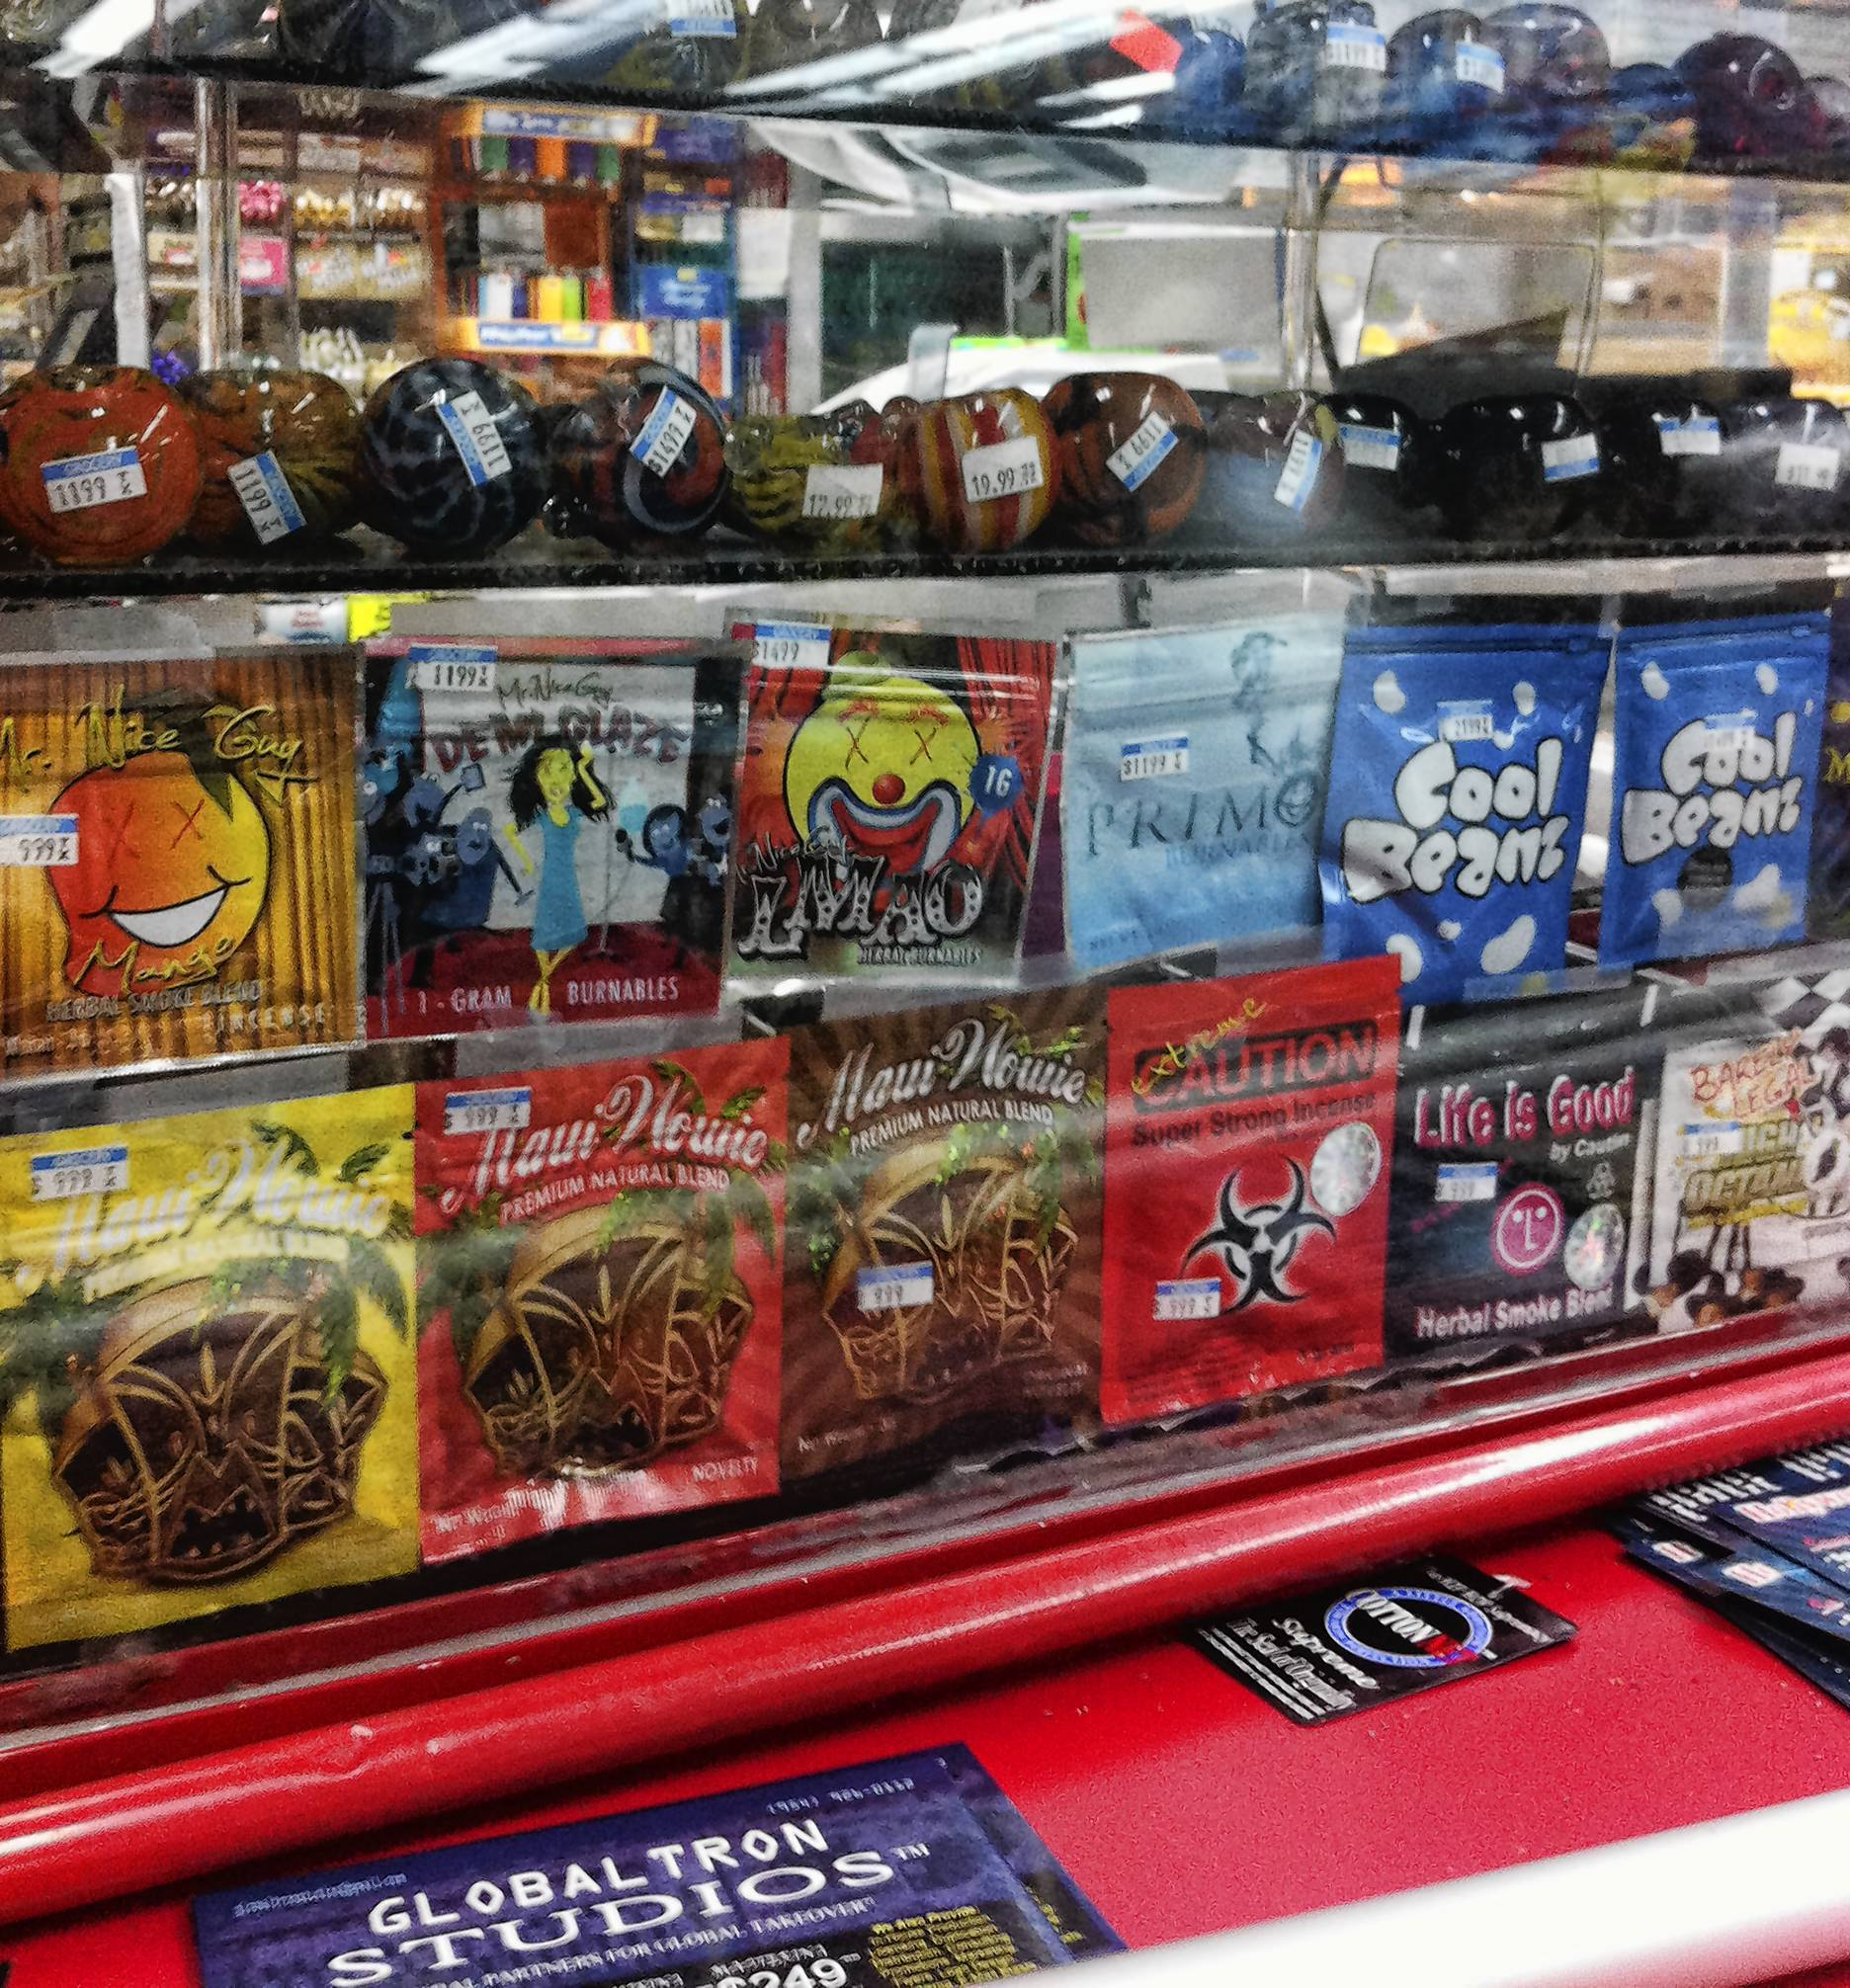 Easy access to synthetic drugs leads to crackdown - Orlando